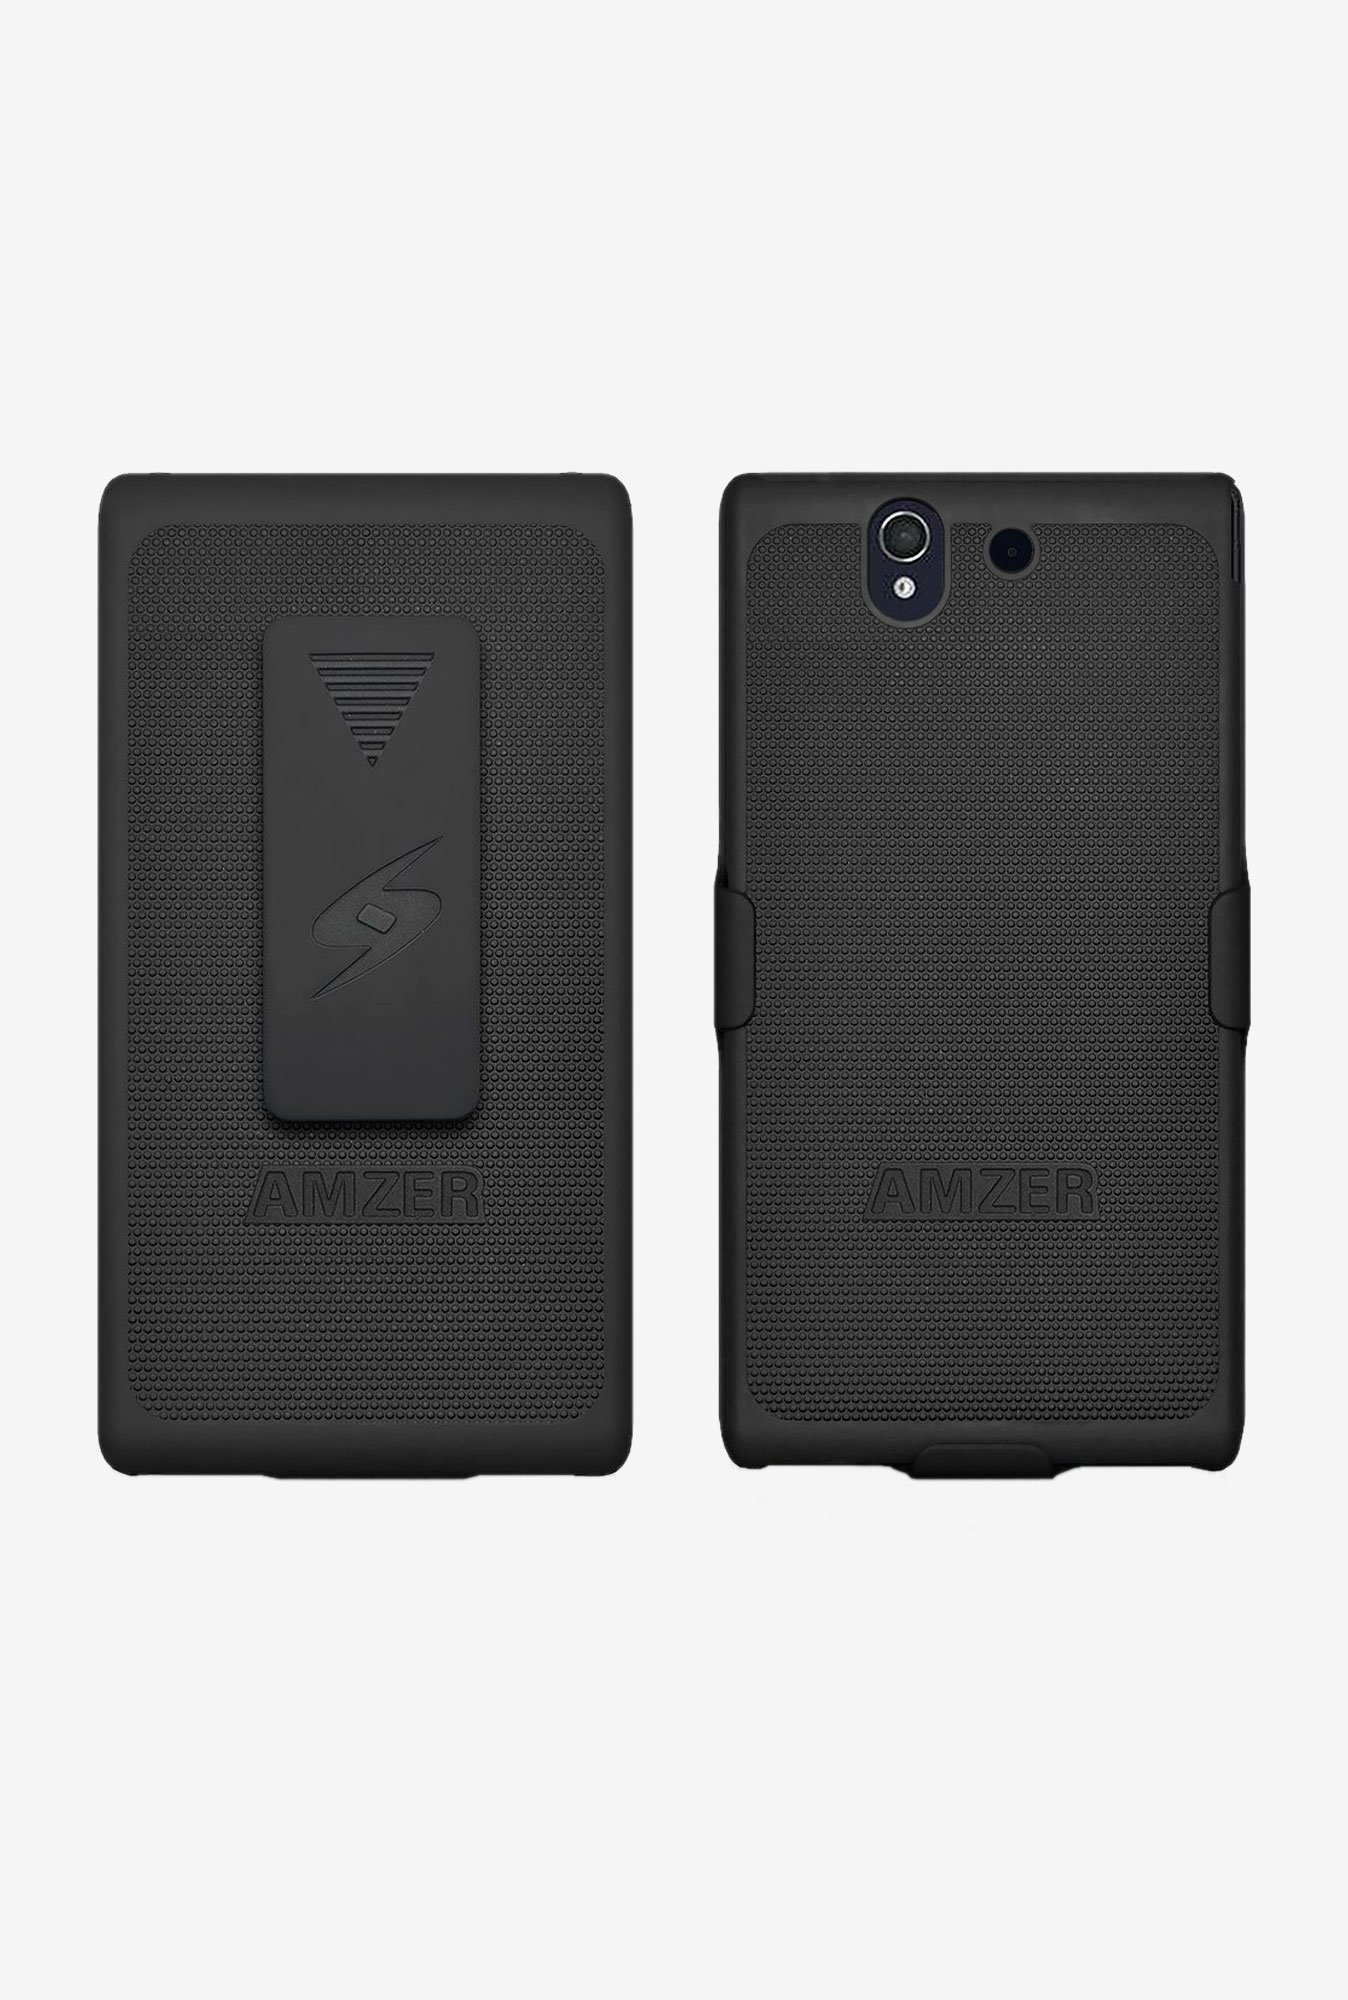 Amzer Shellster Shell Case Black for Xperia Z